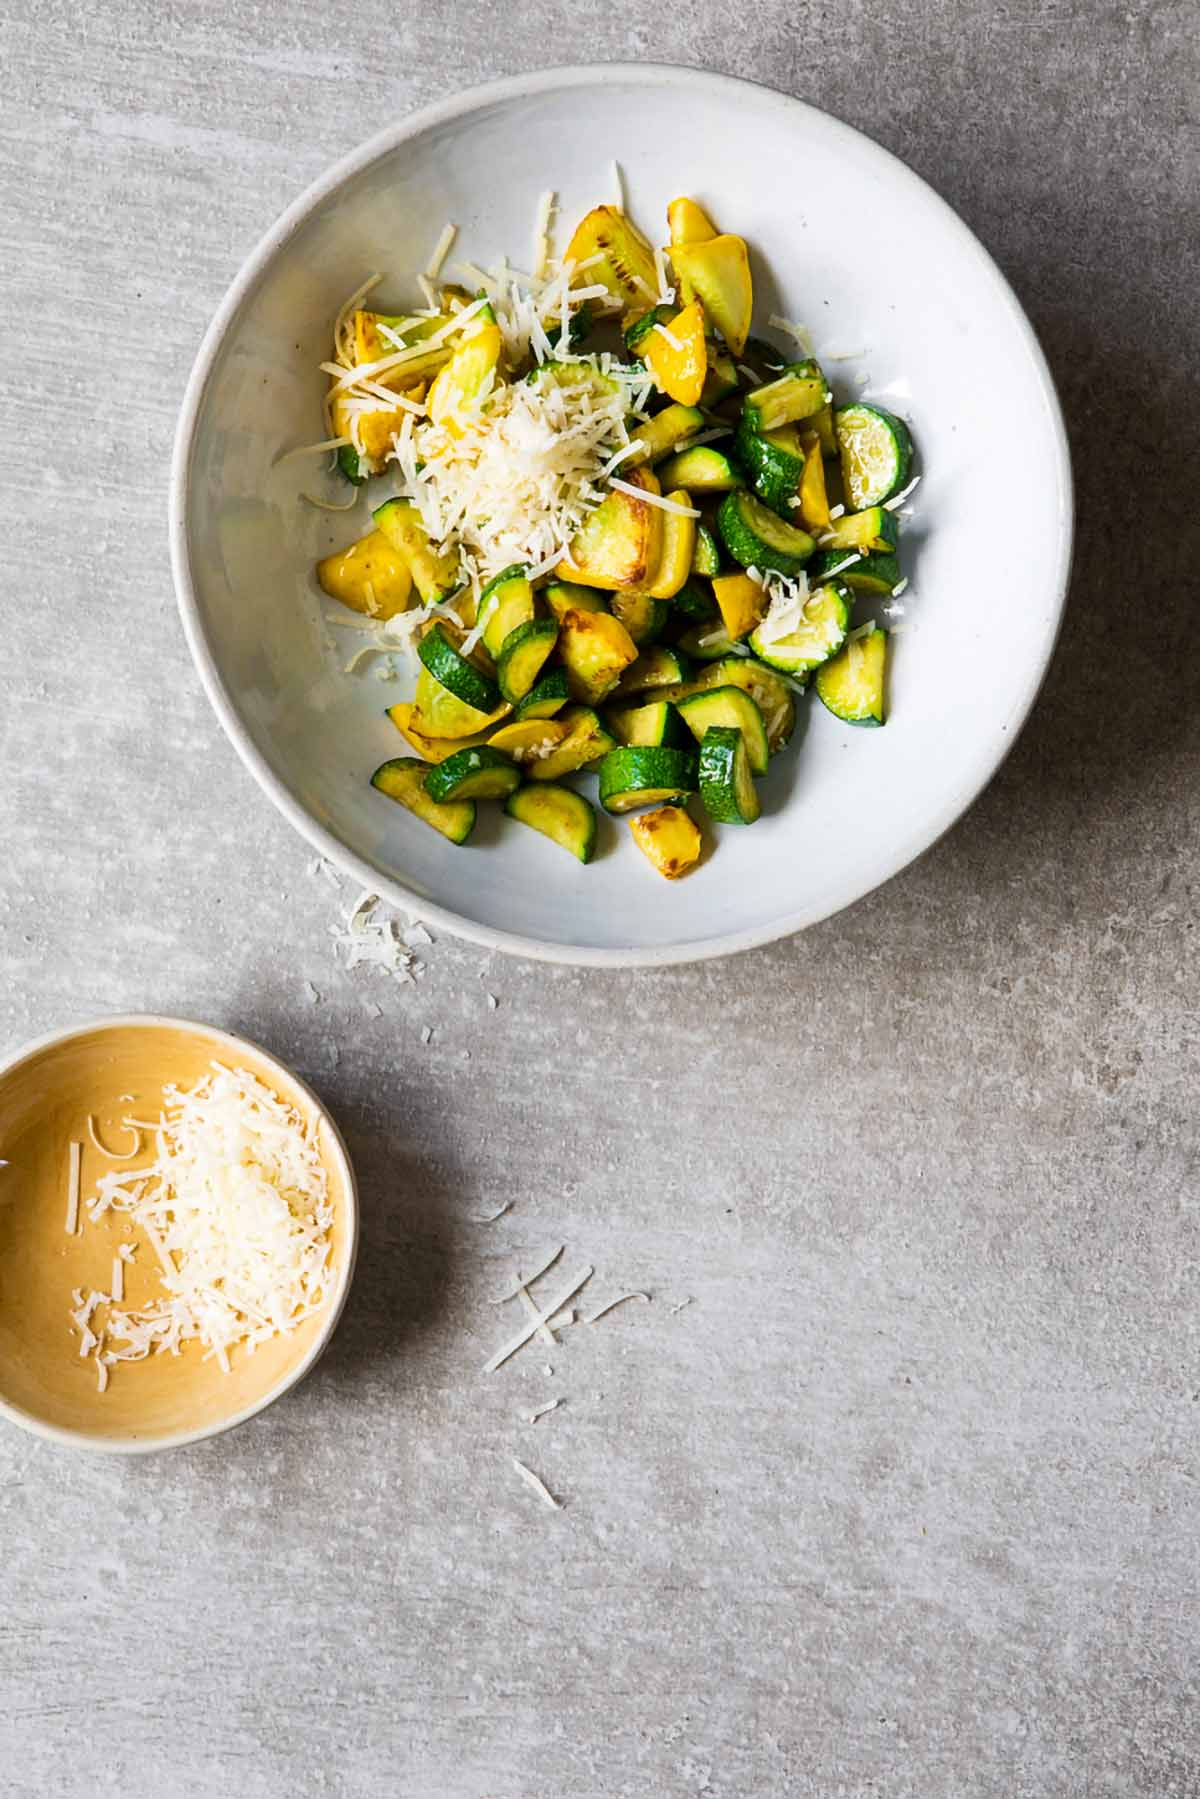 A white bowl filled with sautéed summer squash with a sprinkle of Parmesan on top and a small bowl of Parmesan on the side.